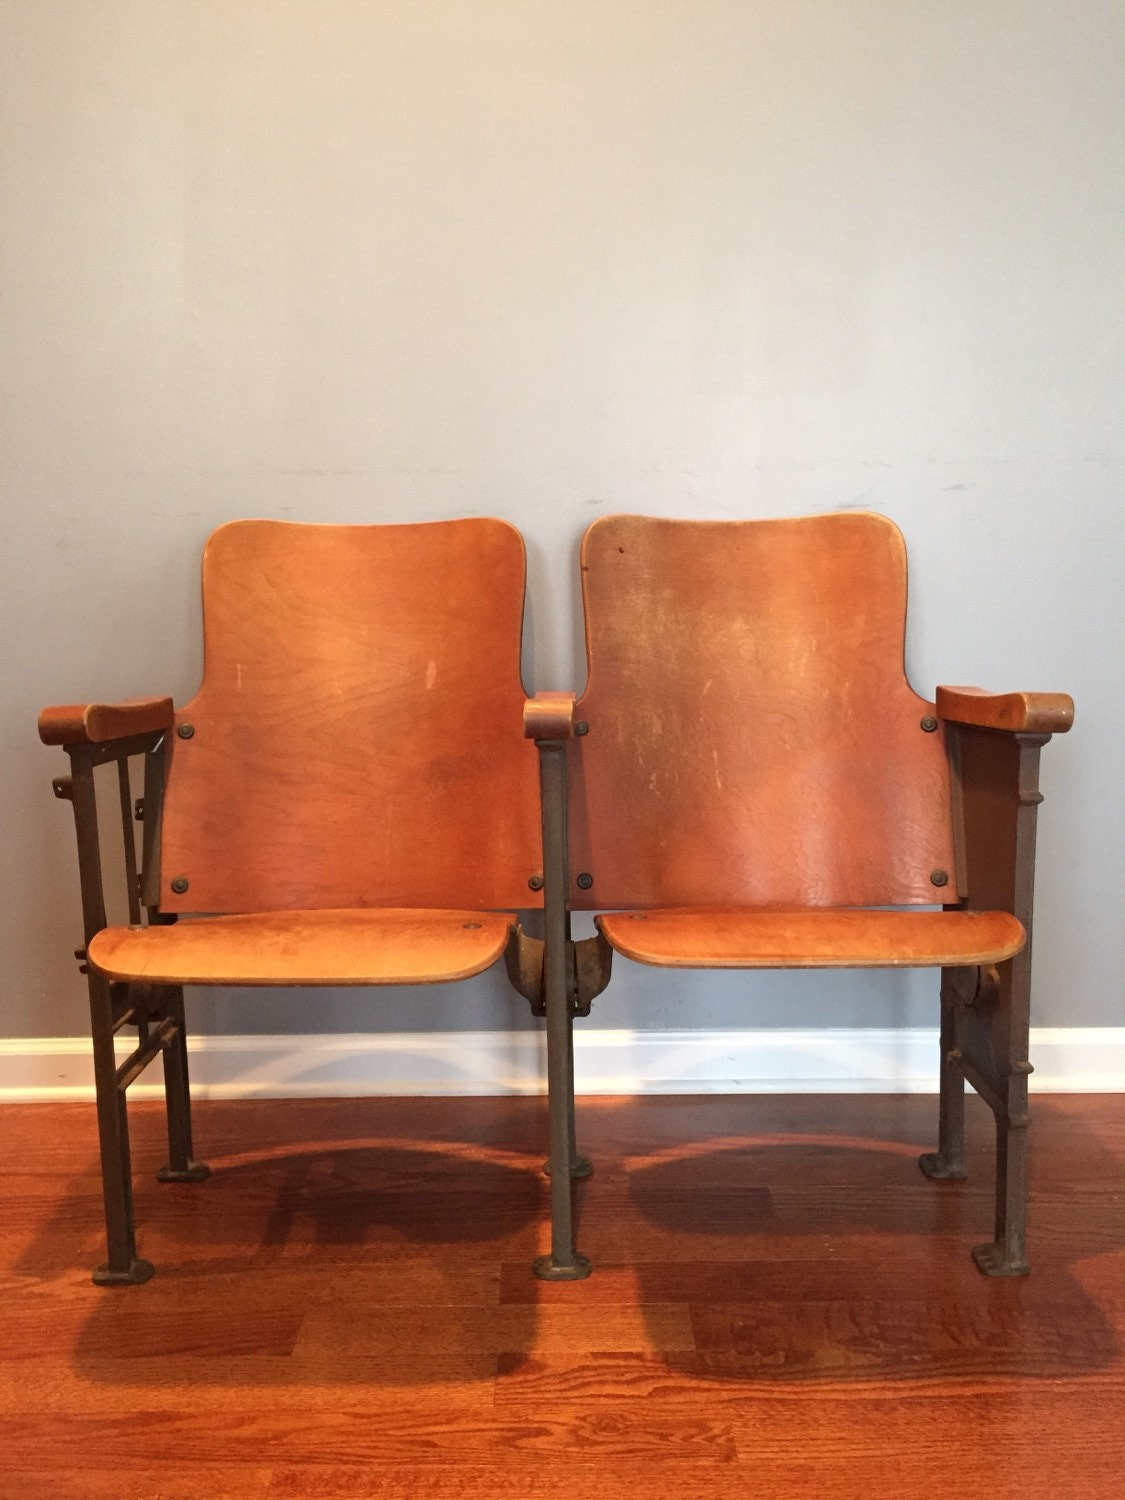 Foyer Seating Furniture : Theater seats movie chairs entryway by rhapsodyattic